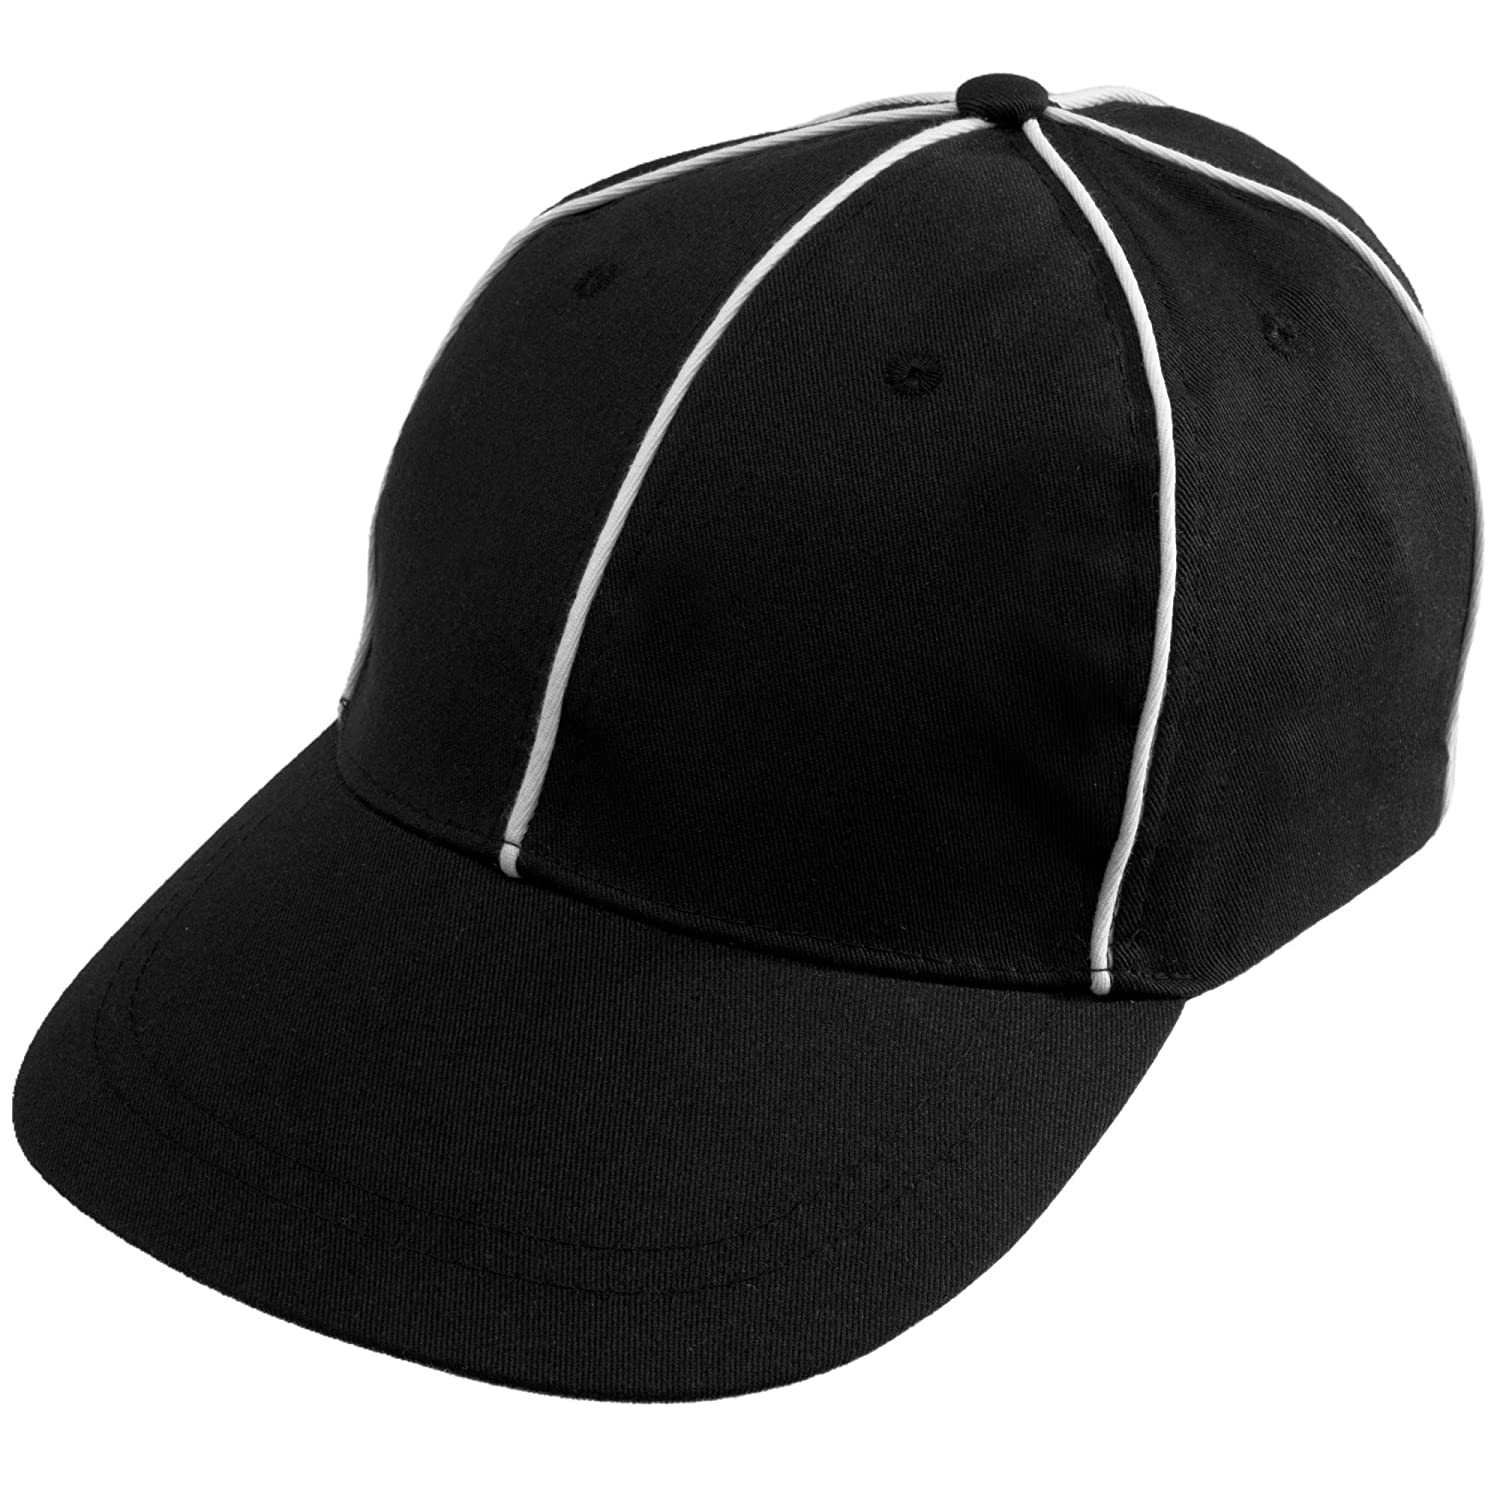 Crown Sporting Goods Official Referee Hat – Adjustable Black with White Stripes Ball Cap – Great for Football Refs Umpires Judges Linesman Uniforms